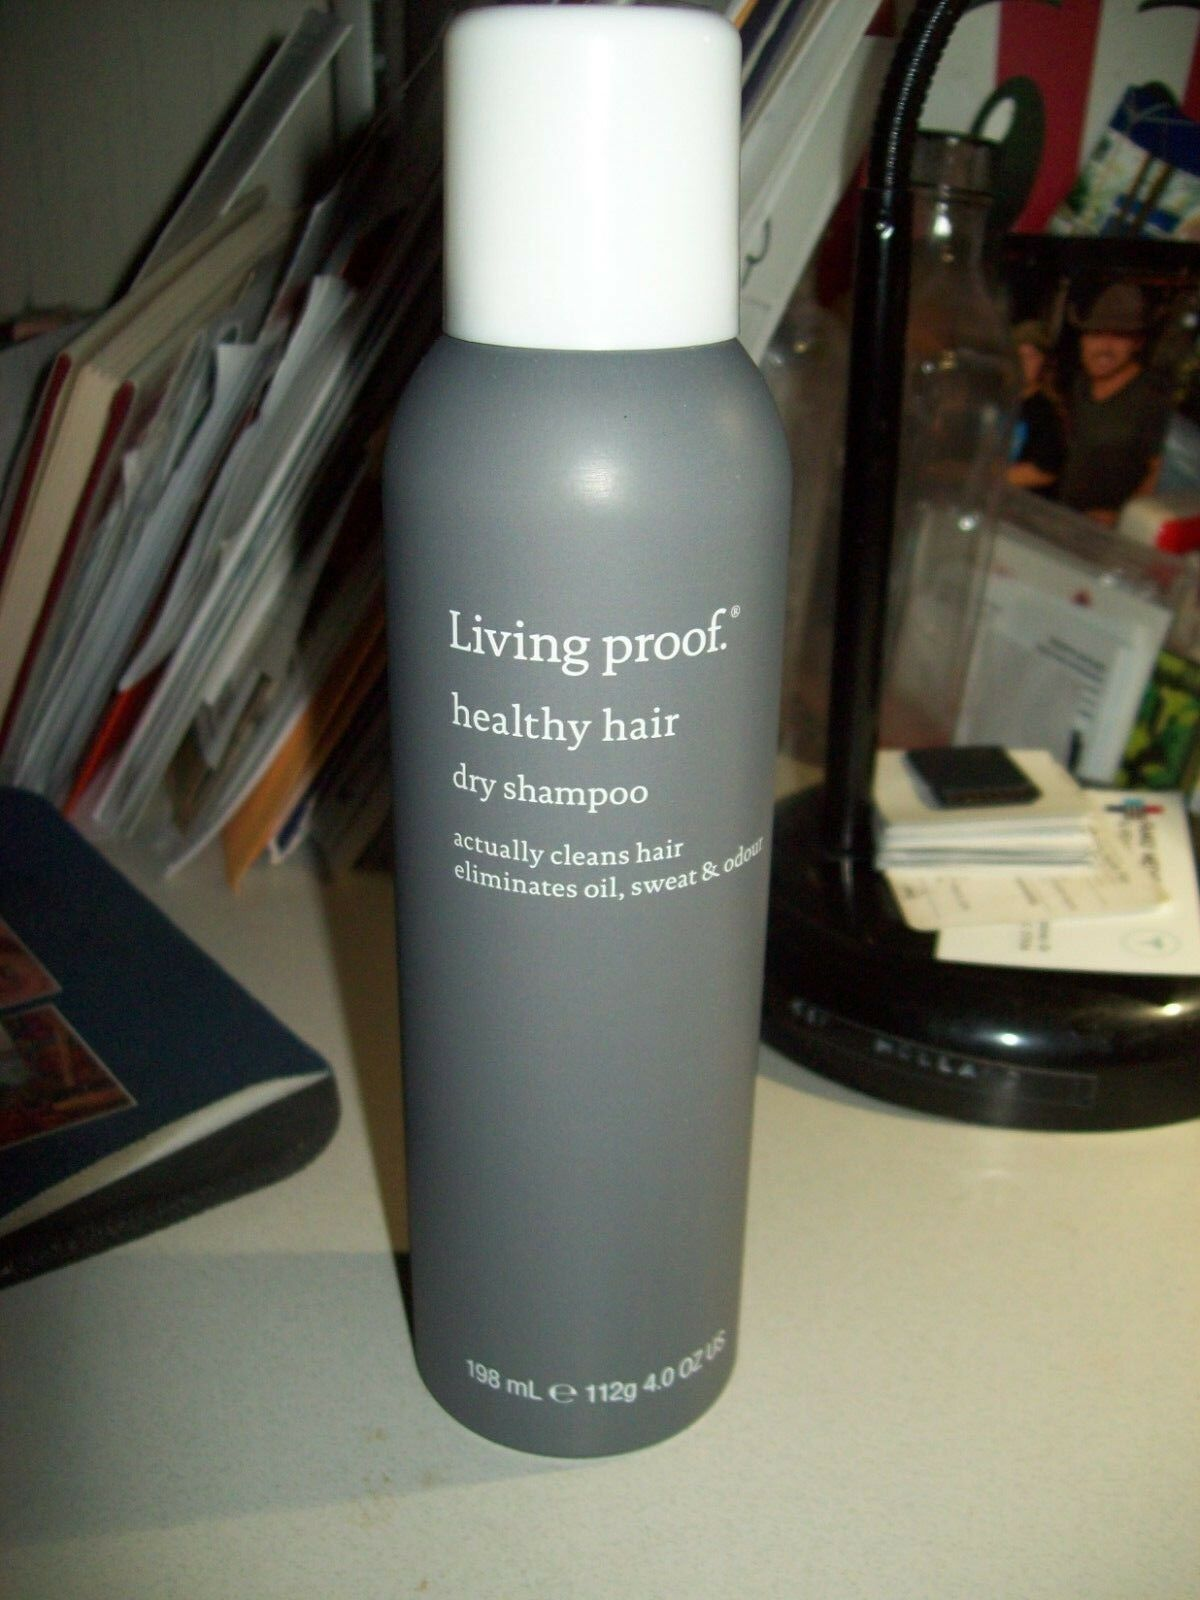 healthy hair dry shampoo 4 oz new